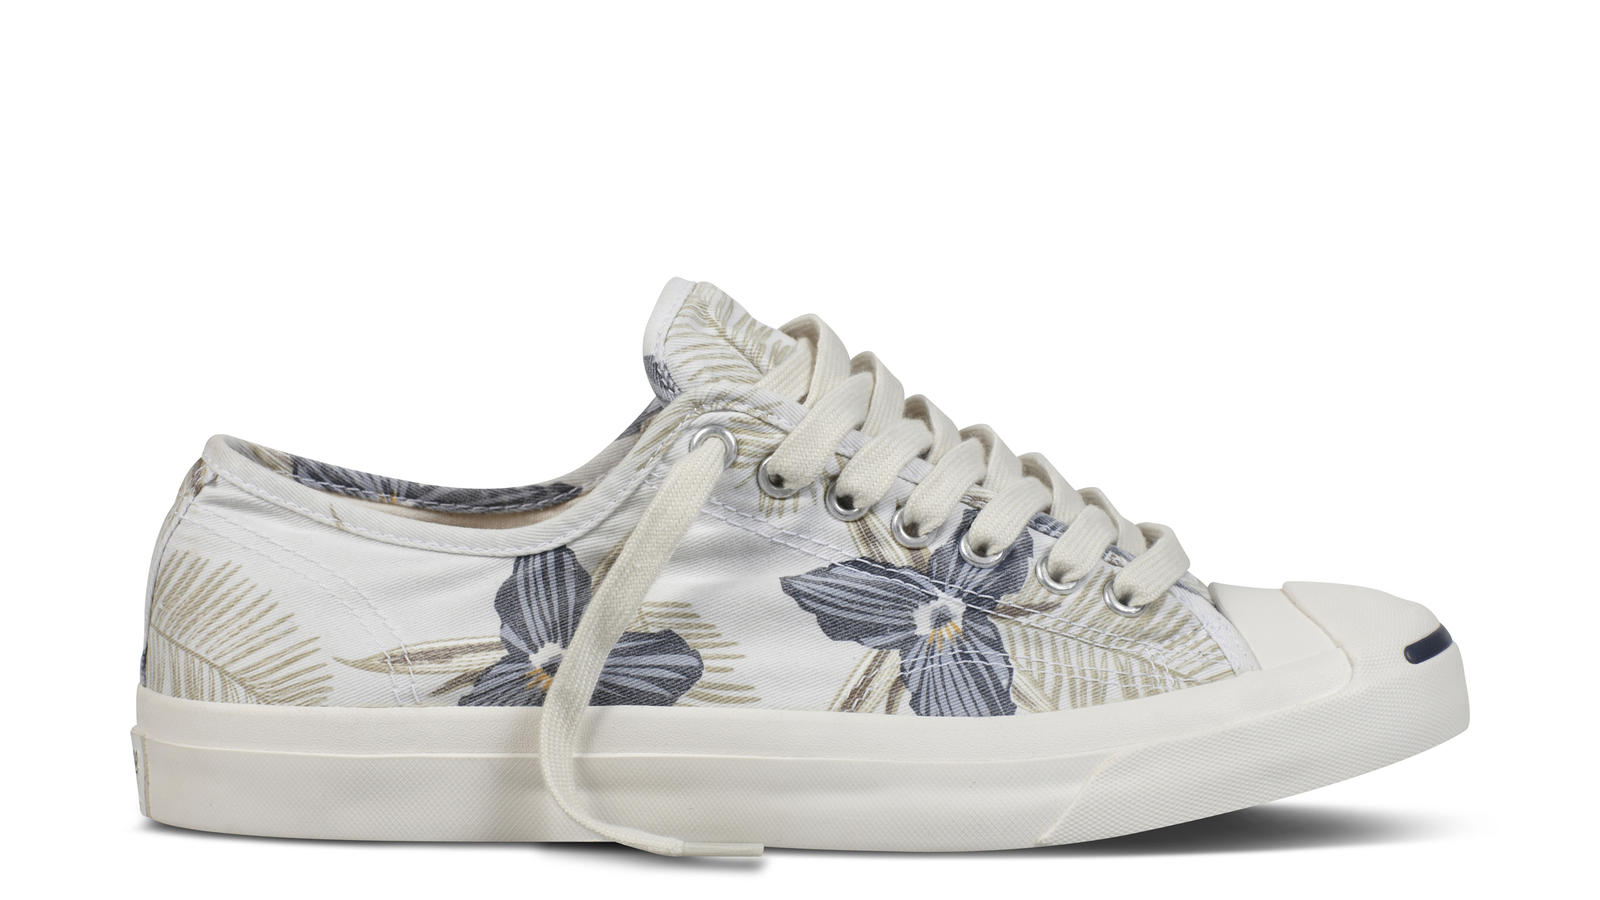 6c7389fce1b1 Converse Launches Its Spring Summer 2013 Jack Purcell   Premium ...